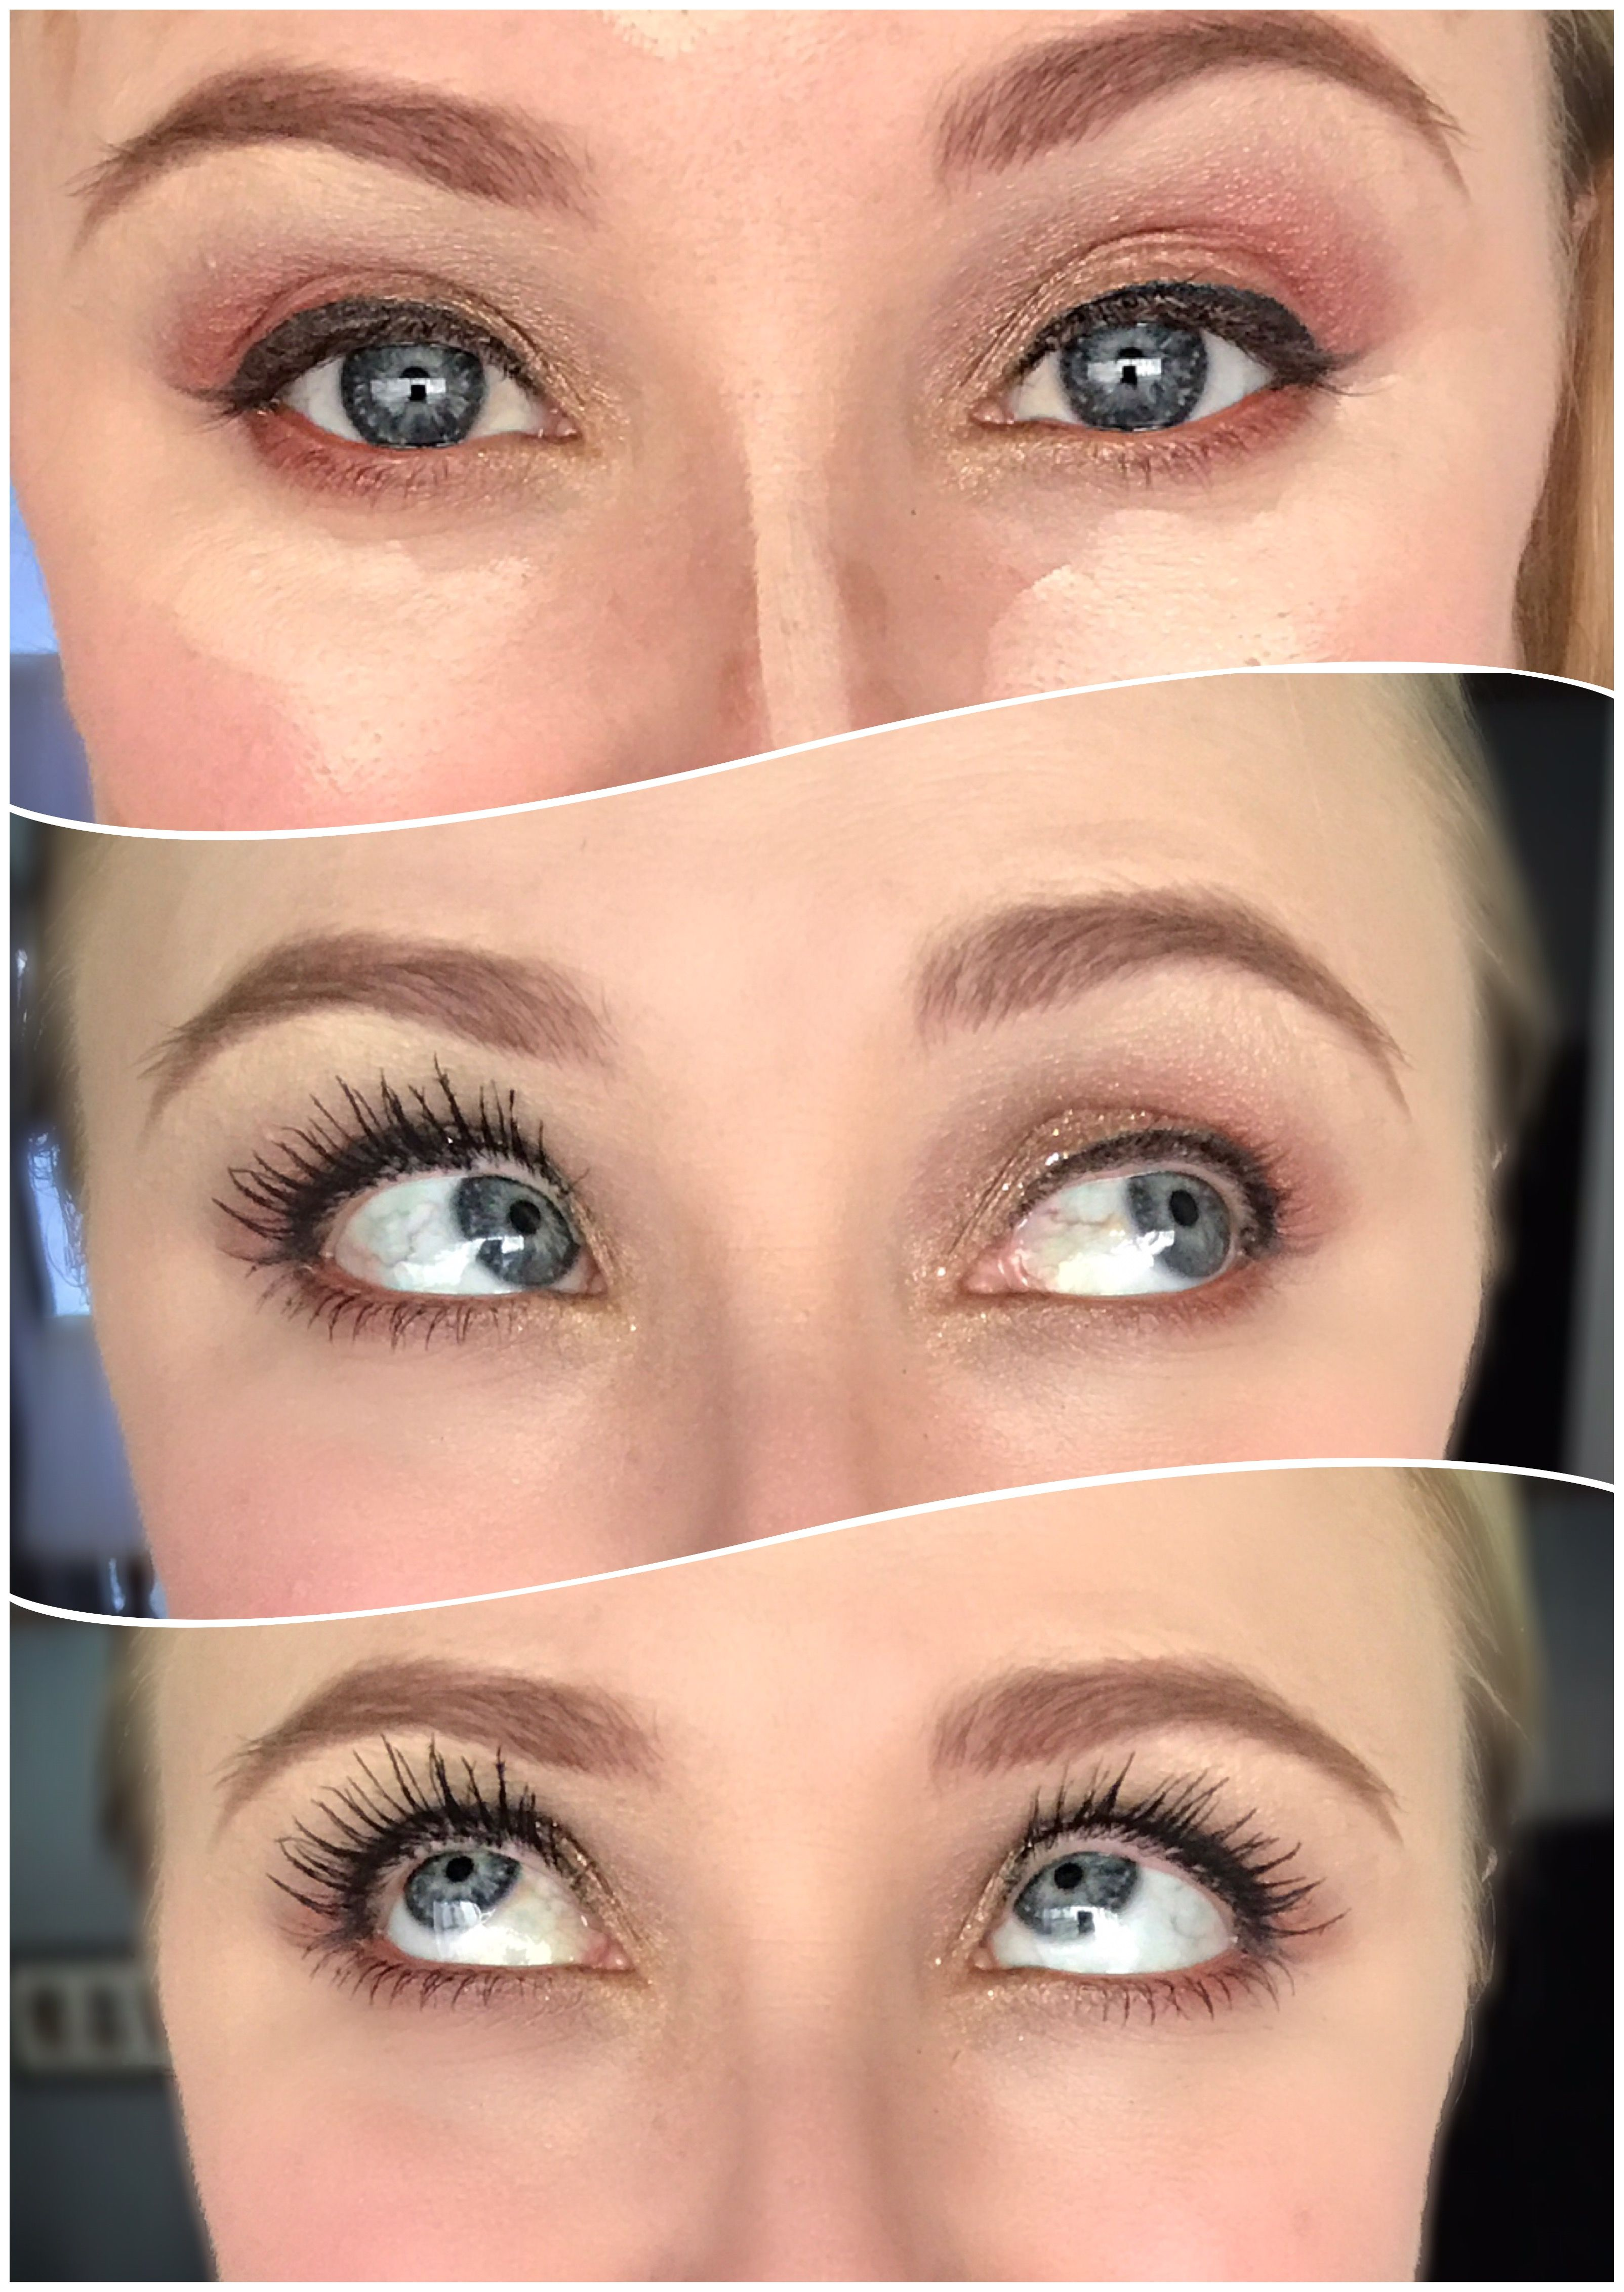 74f0350b484 Short to long lashes, 3d fiber lashes +, mascara, younique, before and  after, mascara tips, mascara tricks, best, natural, water resistant, hacks,  ...